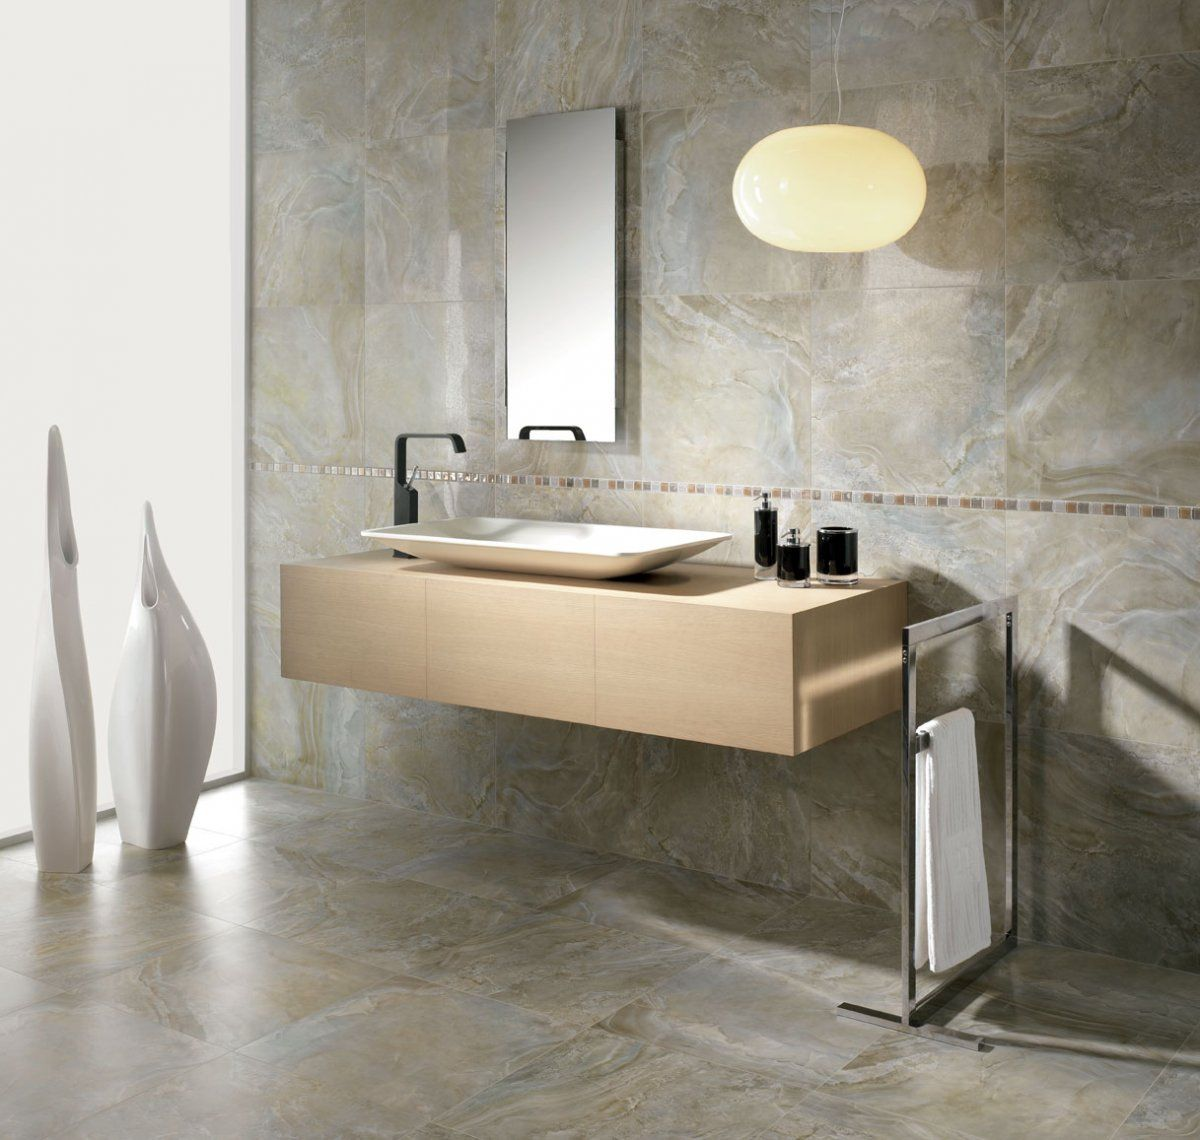 Beige Tiled Bathrooms Minimalist contemporary minimalist bathroom design wallmounted brown wood